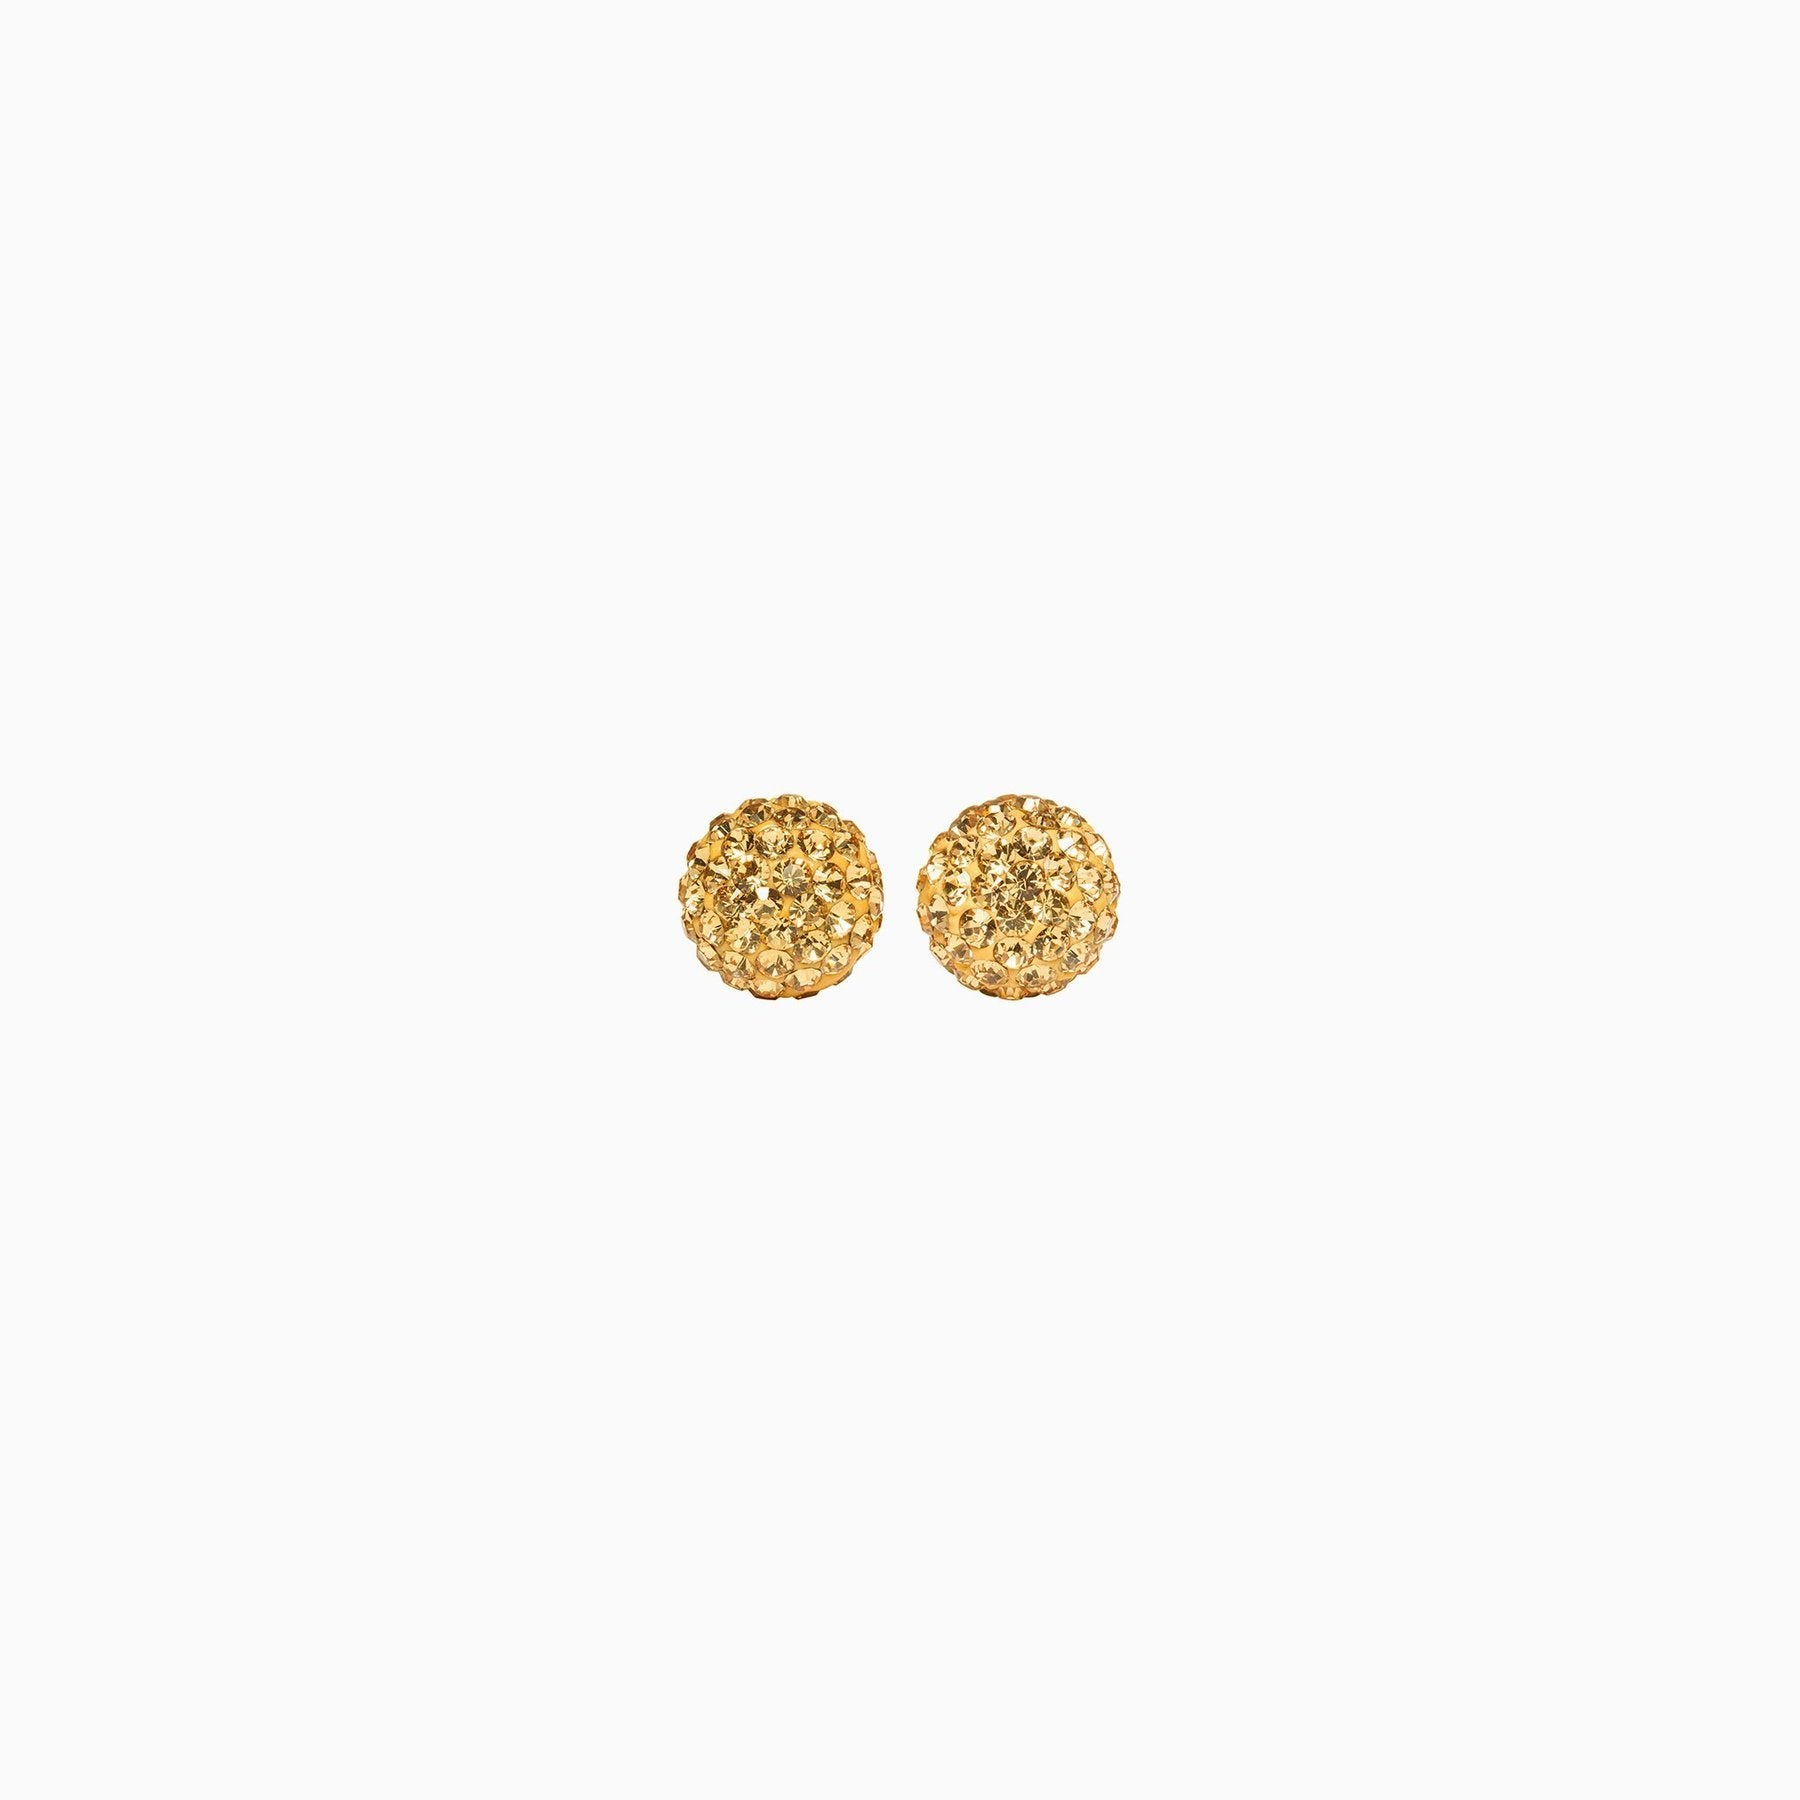 H&B Sparkle Ball™ Stud Earrings - 8mm Gold